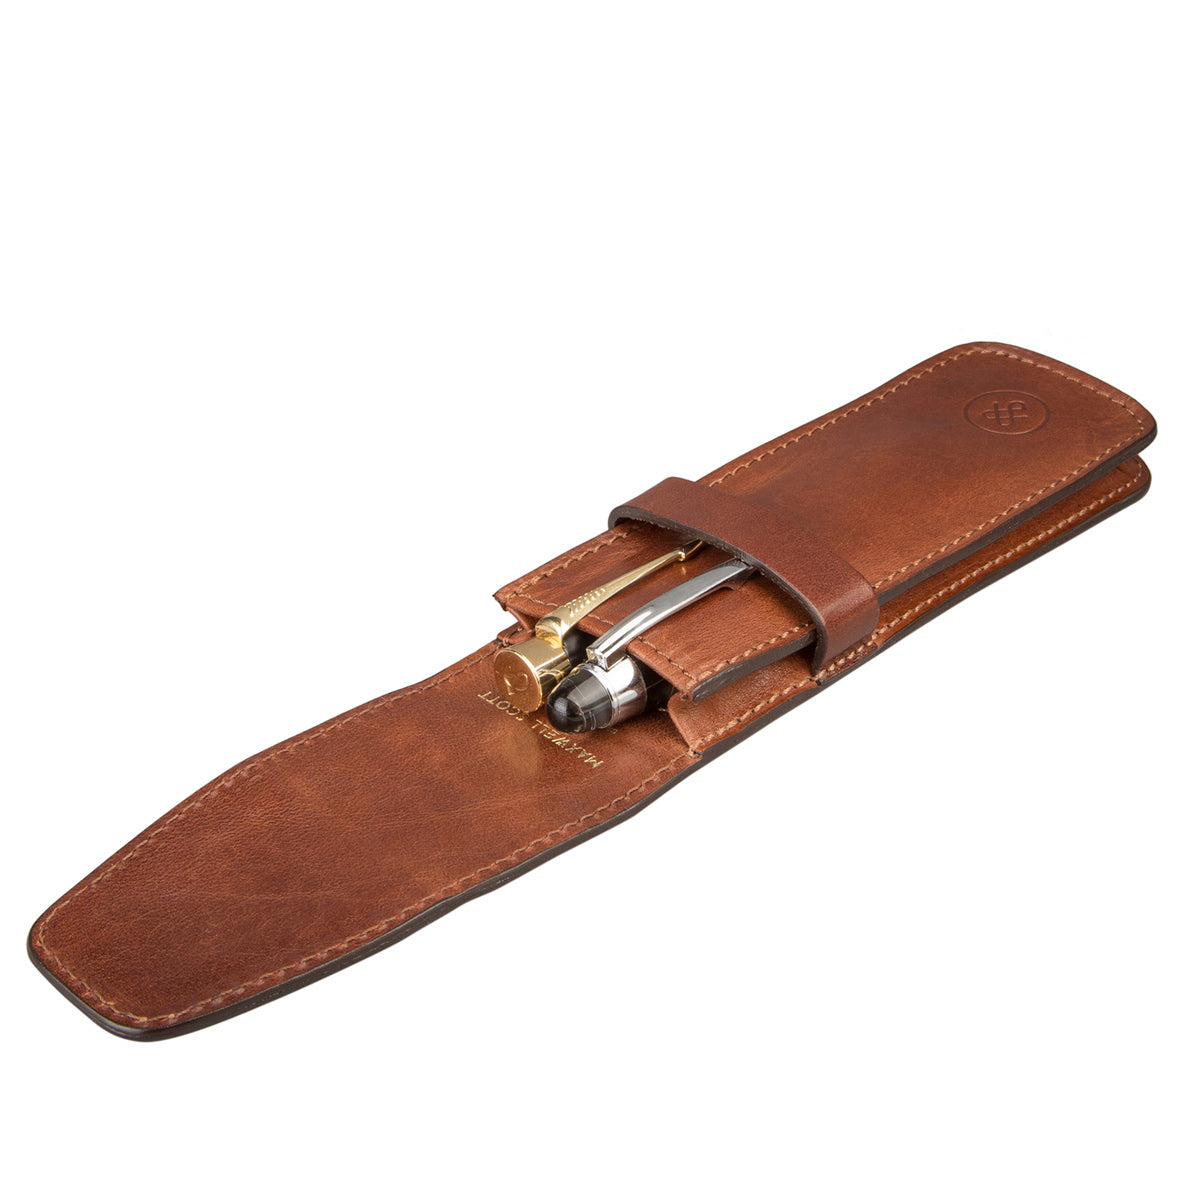 Image 5 of the 'Pienza' Chestnut Veg-Tanned Leather Pen Case